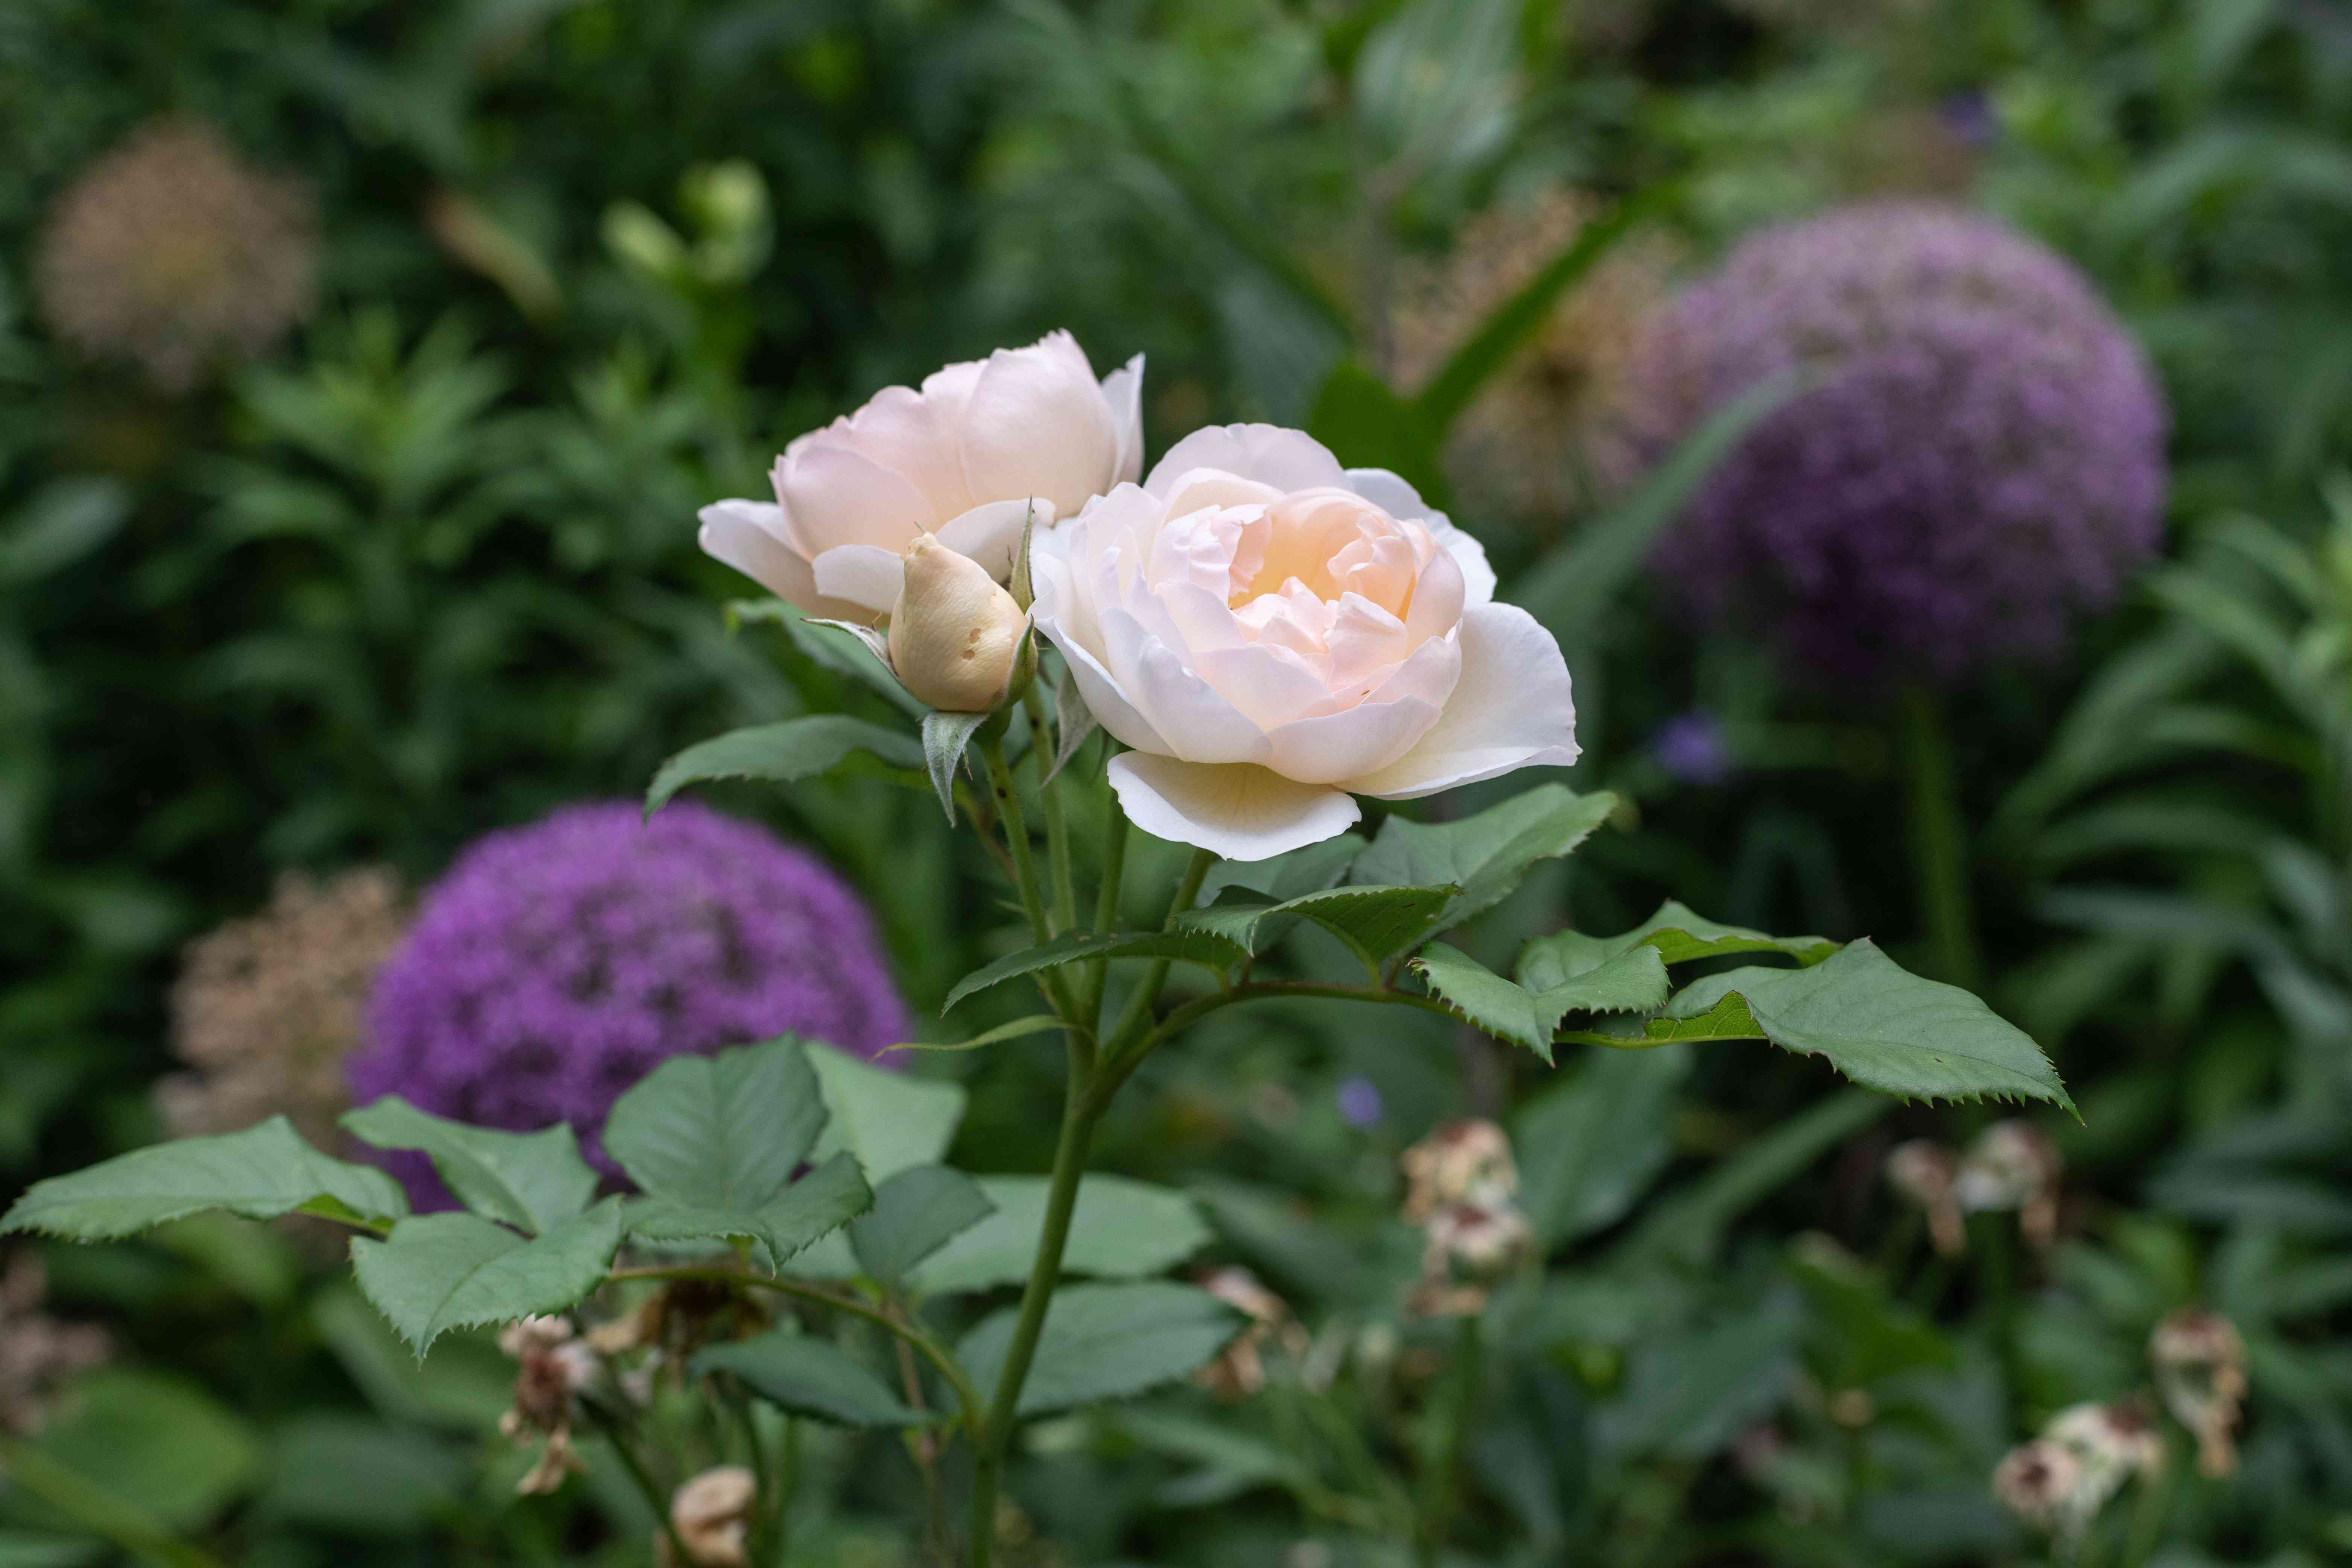 White roses with ruffled petals on thin stem in garden